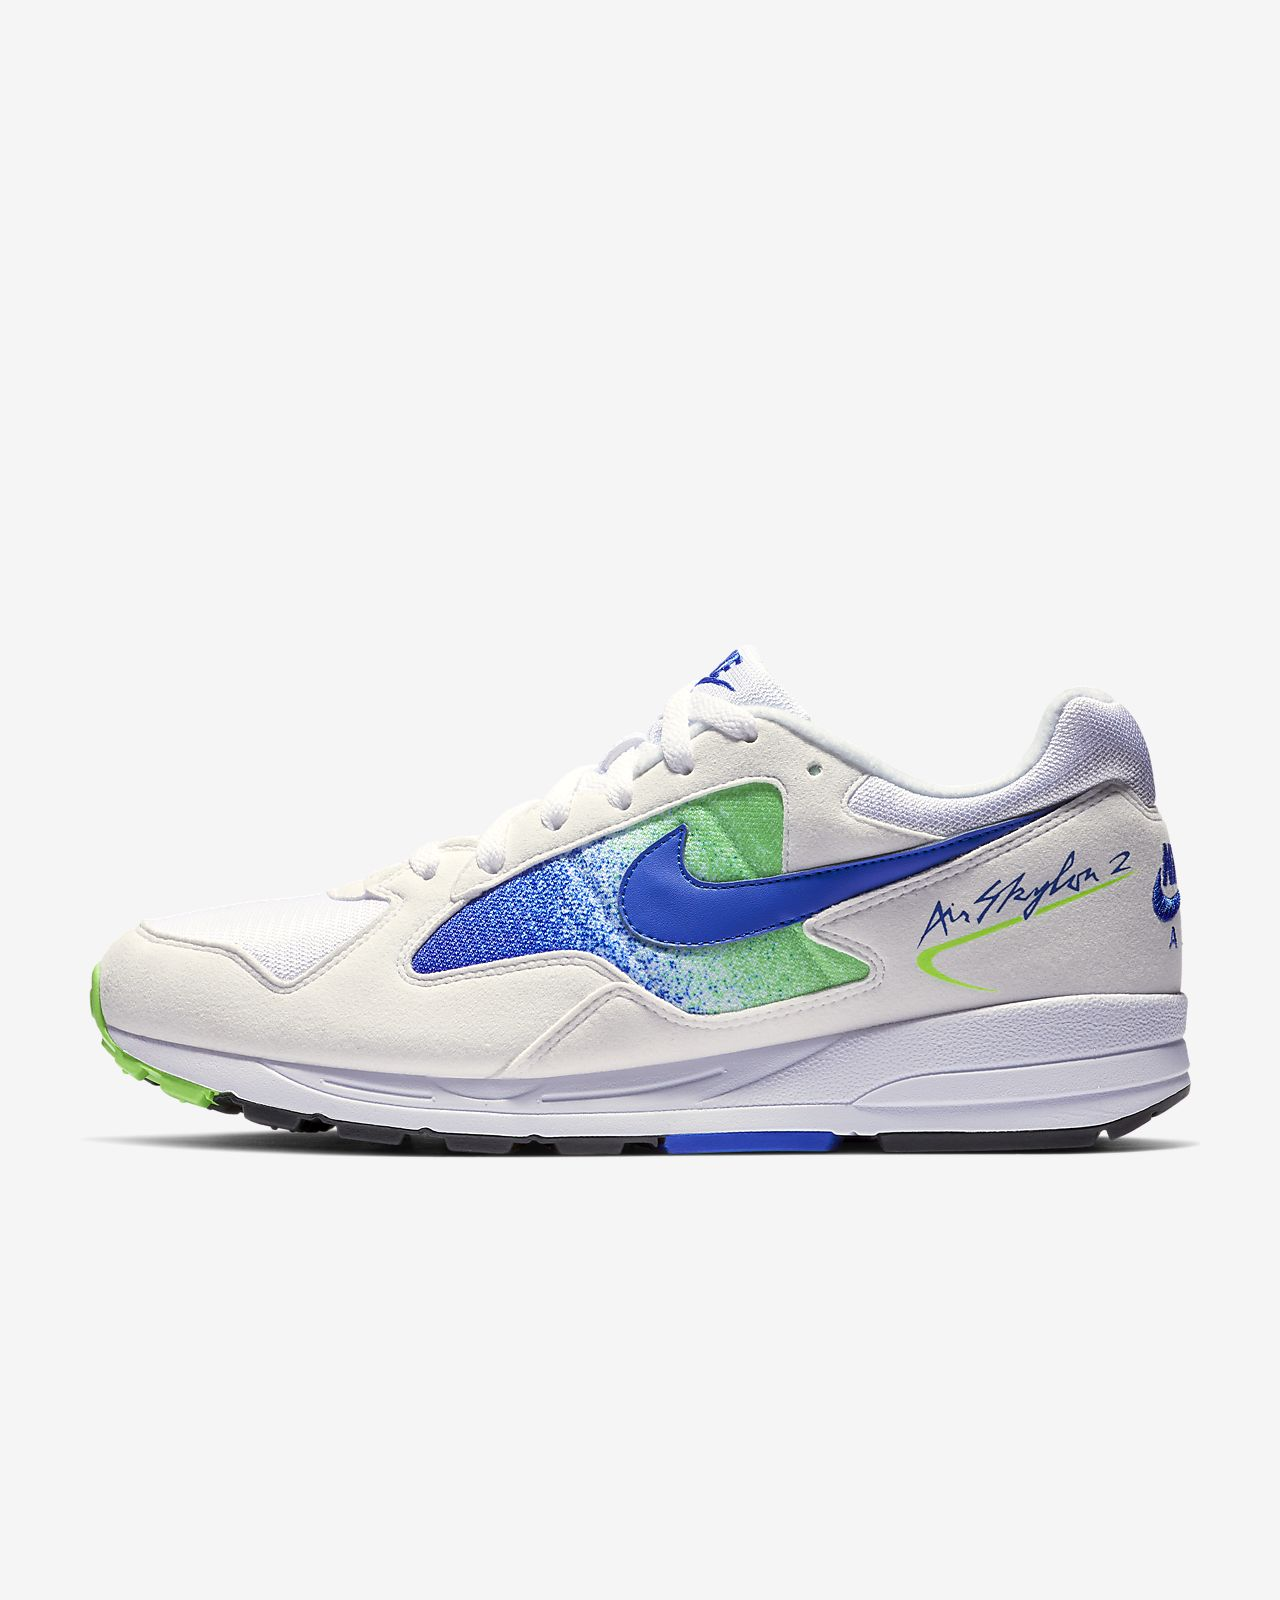 443f717ef730 Nike Air Skylon II Men s Shoe. Nike.com